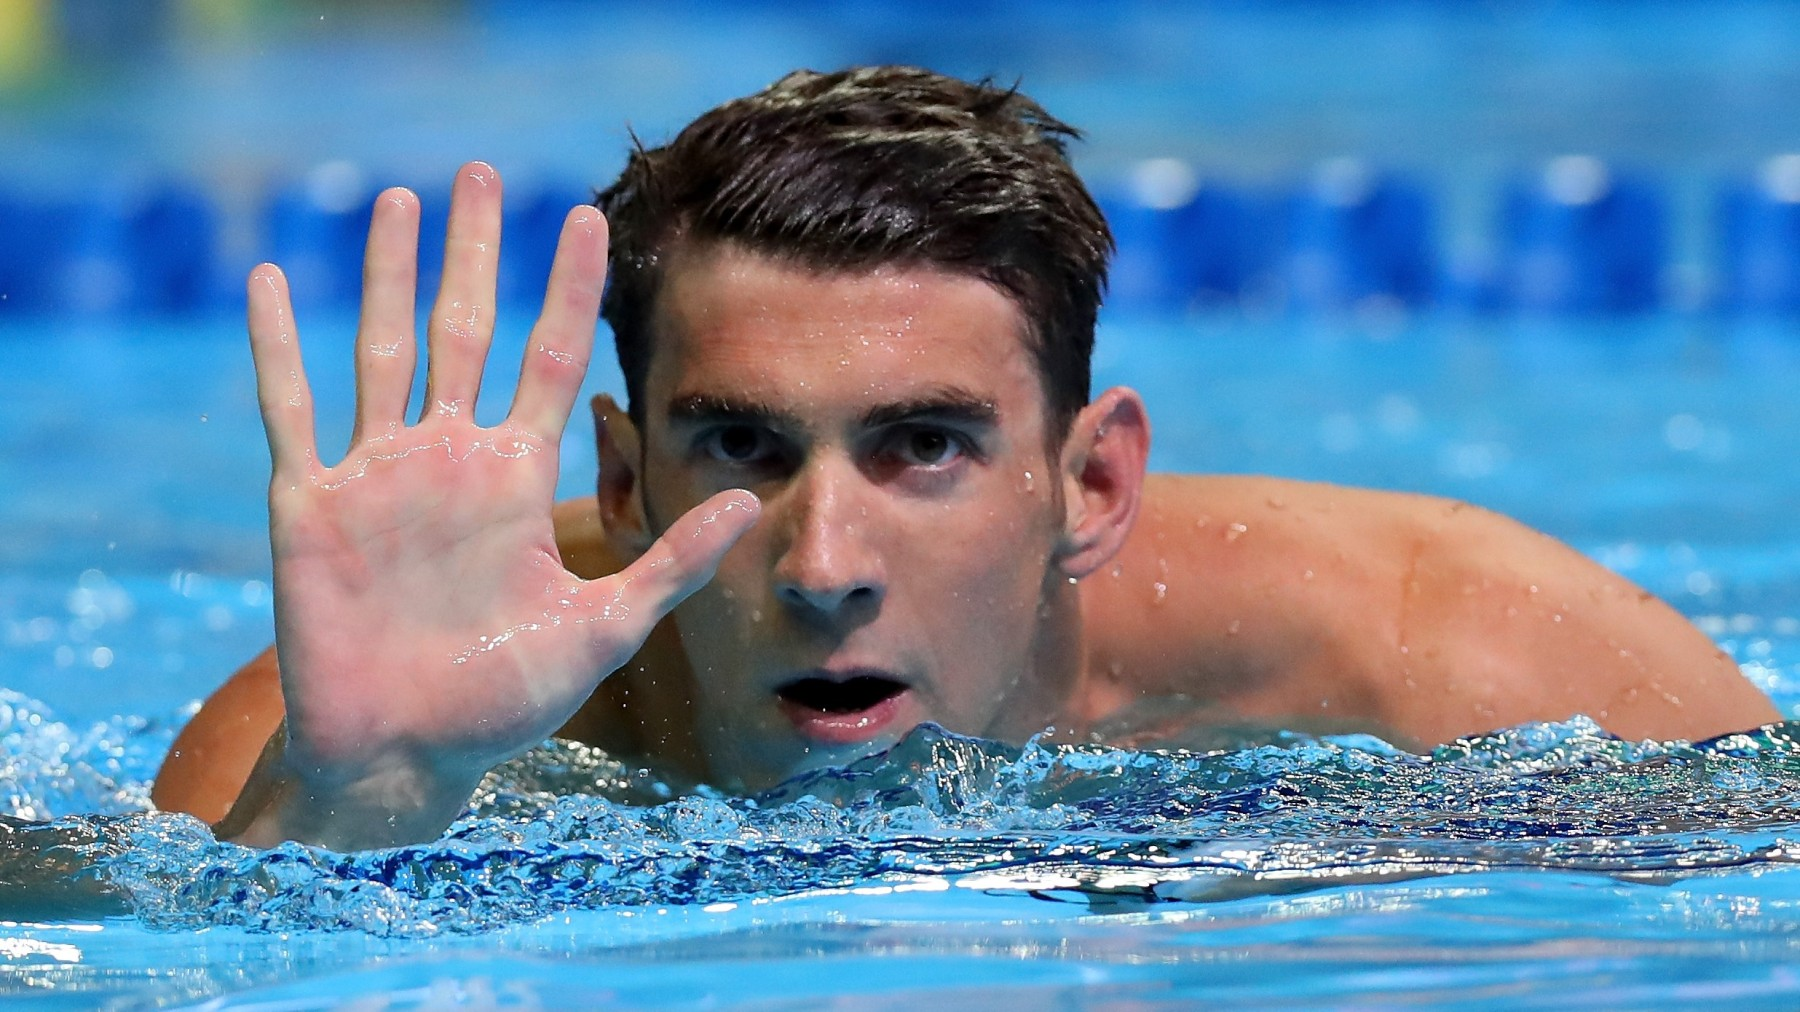 OMAHA, NE - JUNE 29:  Michael Phelps of the United States reacts after winning the final heat for the Men's 200 Meter Butterfly during Day Four of the 2016 U.S. Olympic Team Swimming Trials at CenturyLink Center on June 29, 2016 in Omaha, Nebraska.  (Photo by Tom Pennington/Getty Images)